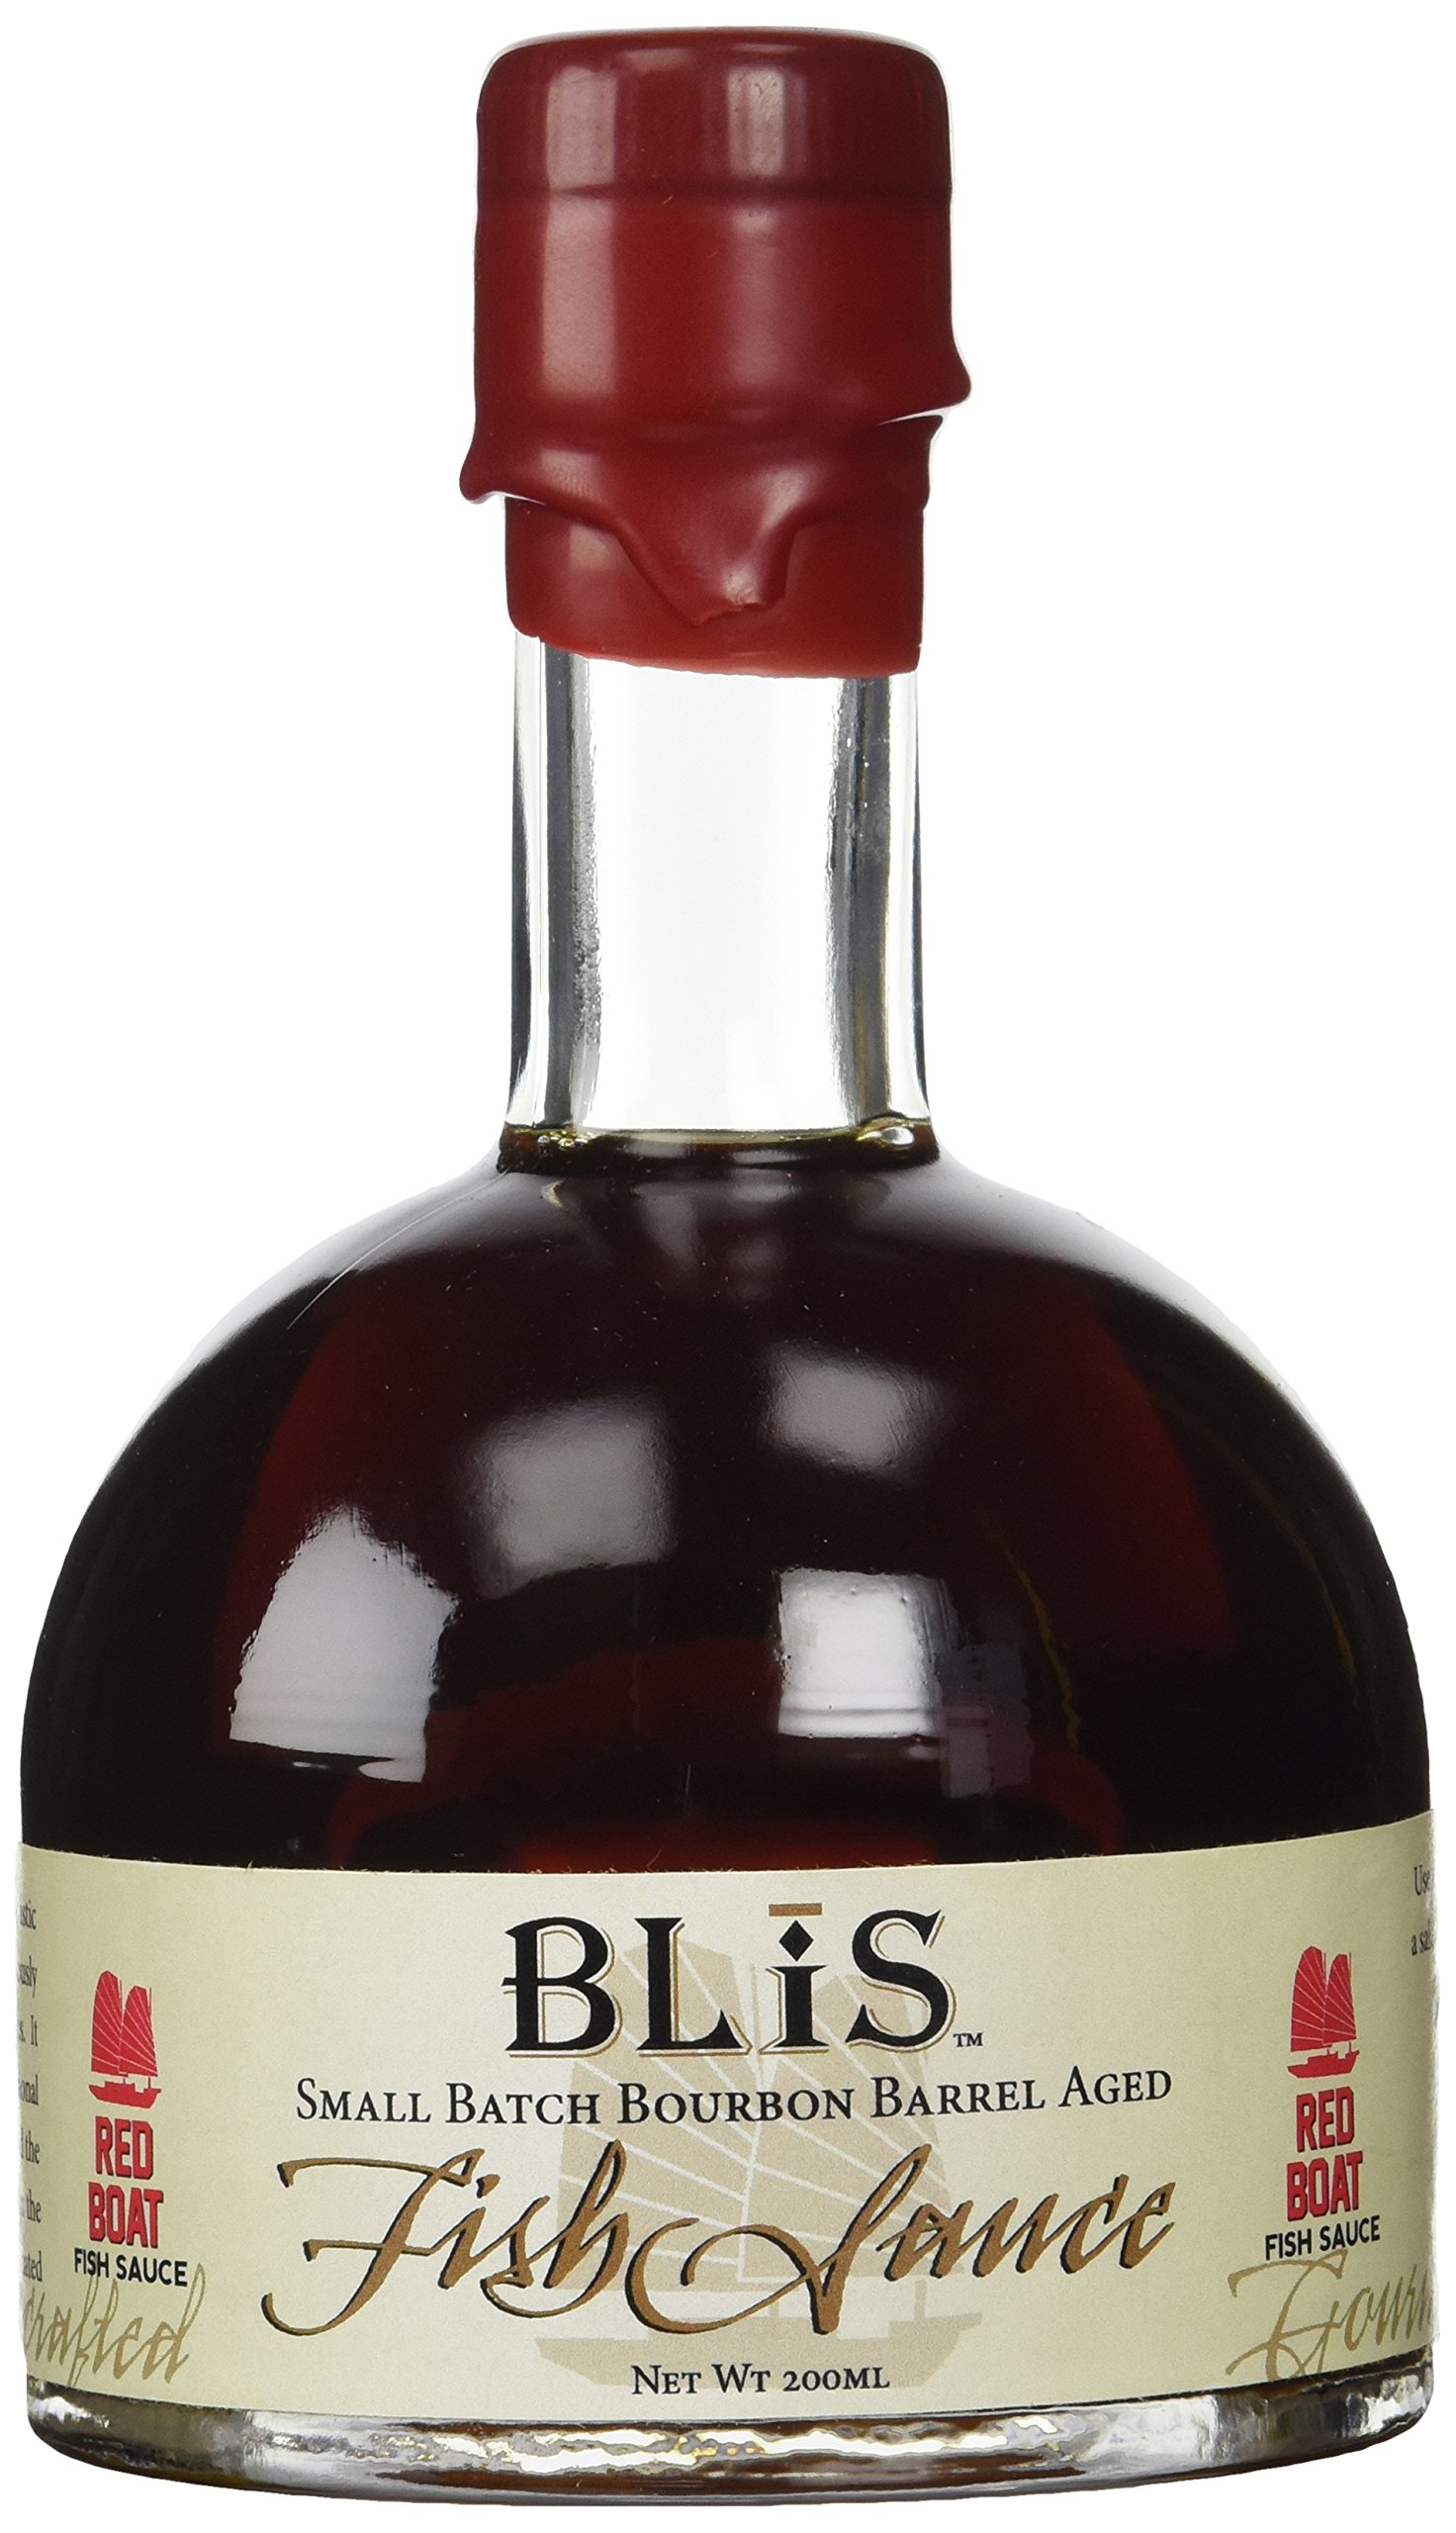 BLiS Barrel Aged Fish Sauce, 200 ml Bottle